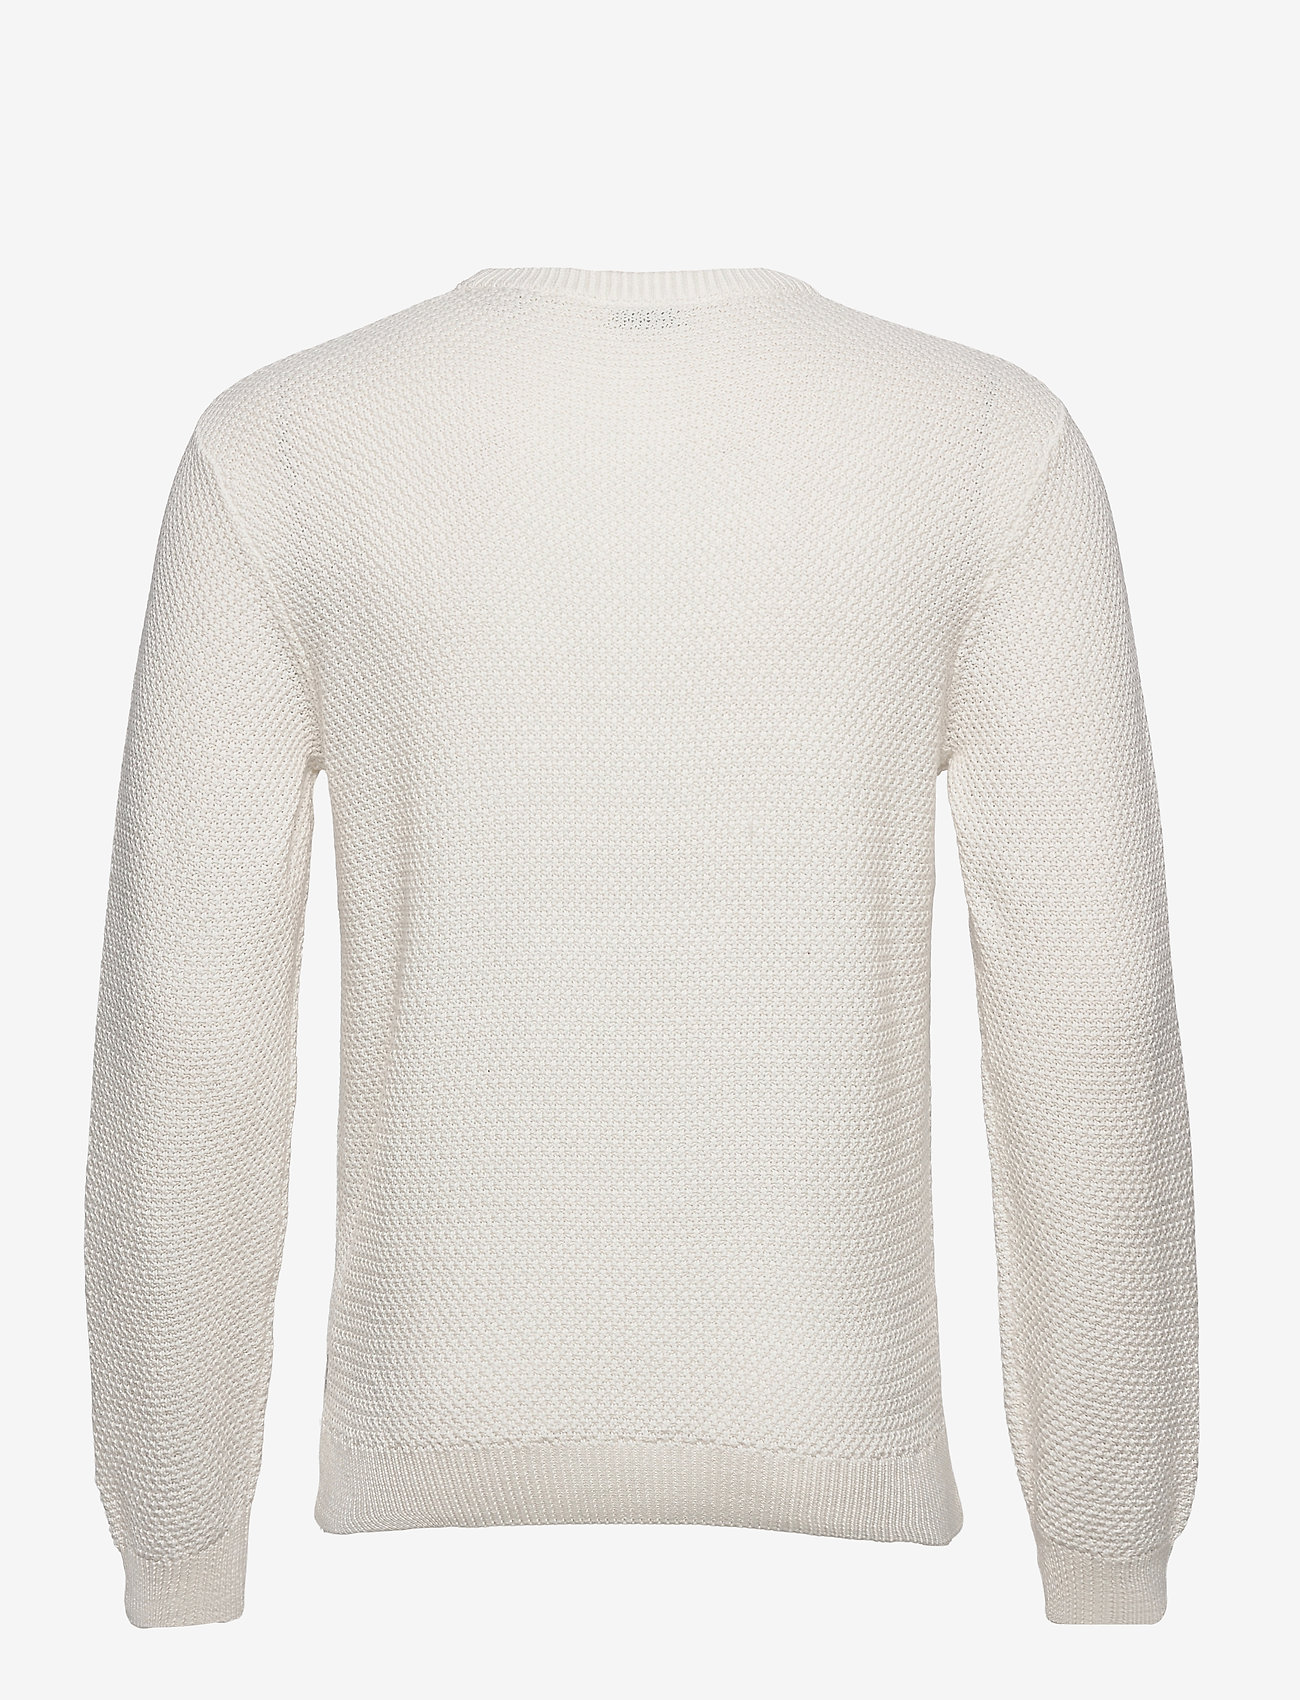 EDC by Esprit - Sweaters - tricots basiques - off white - 1